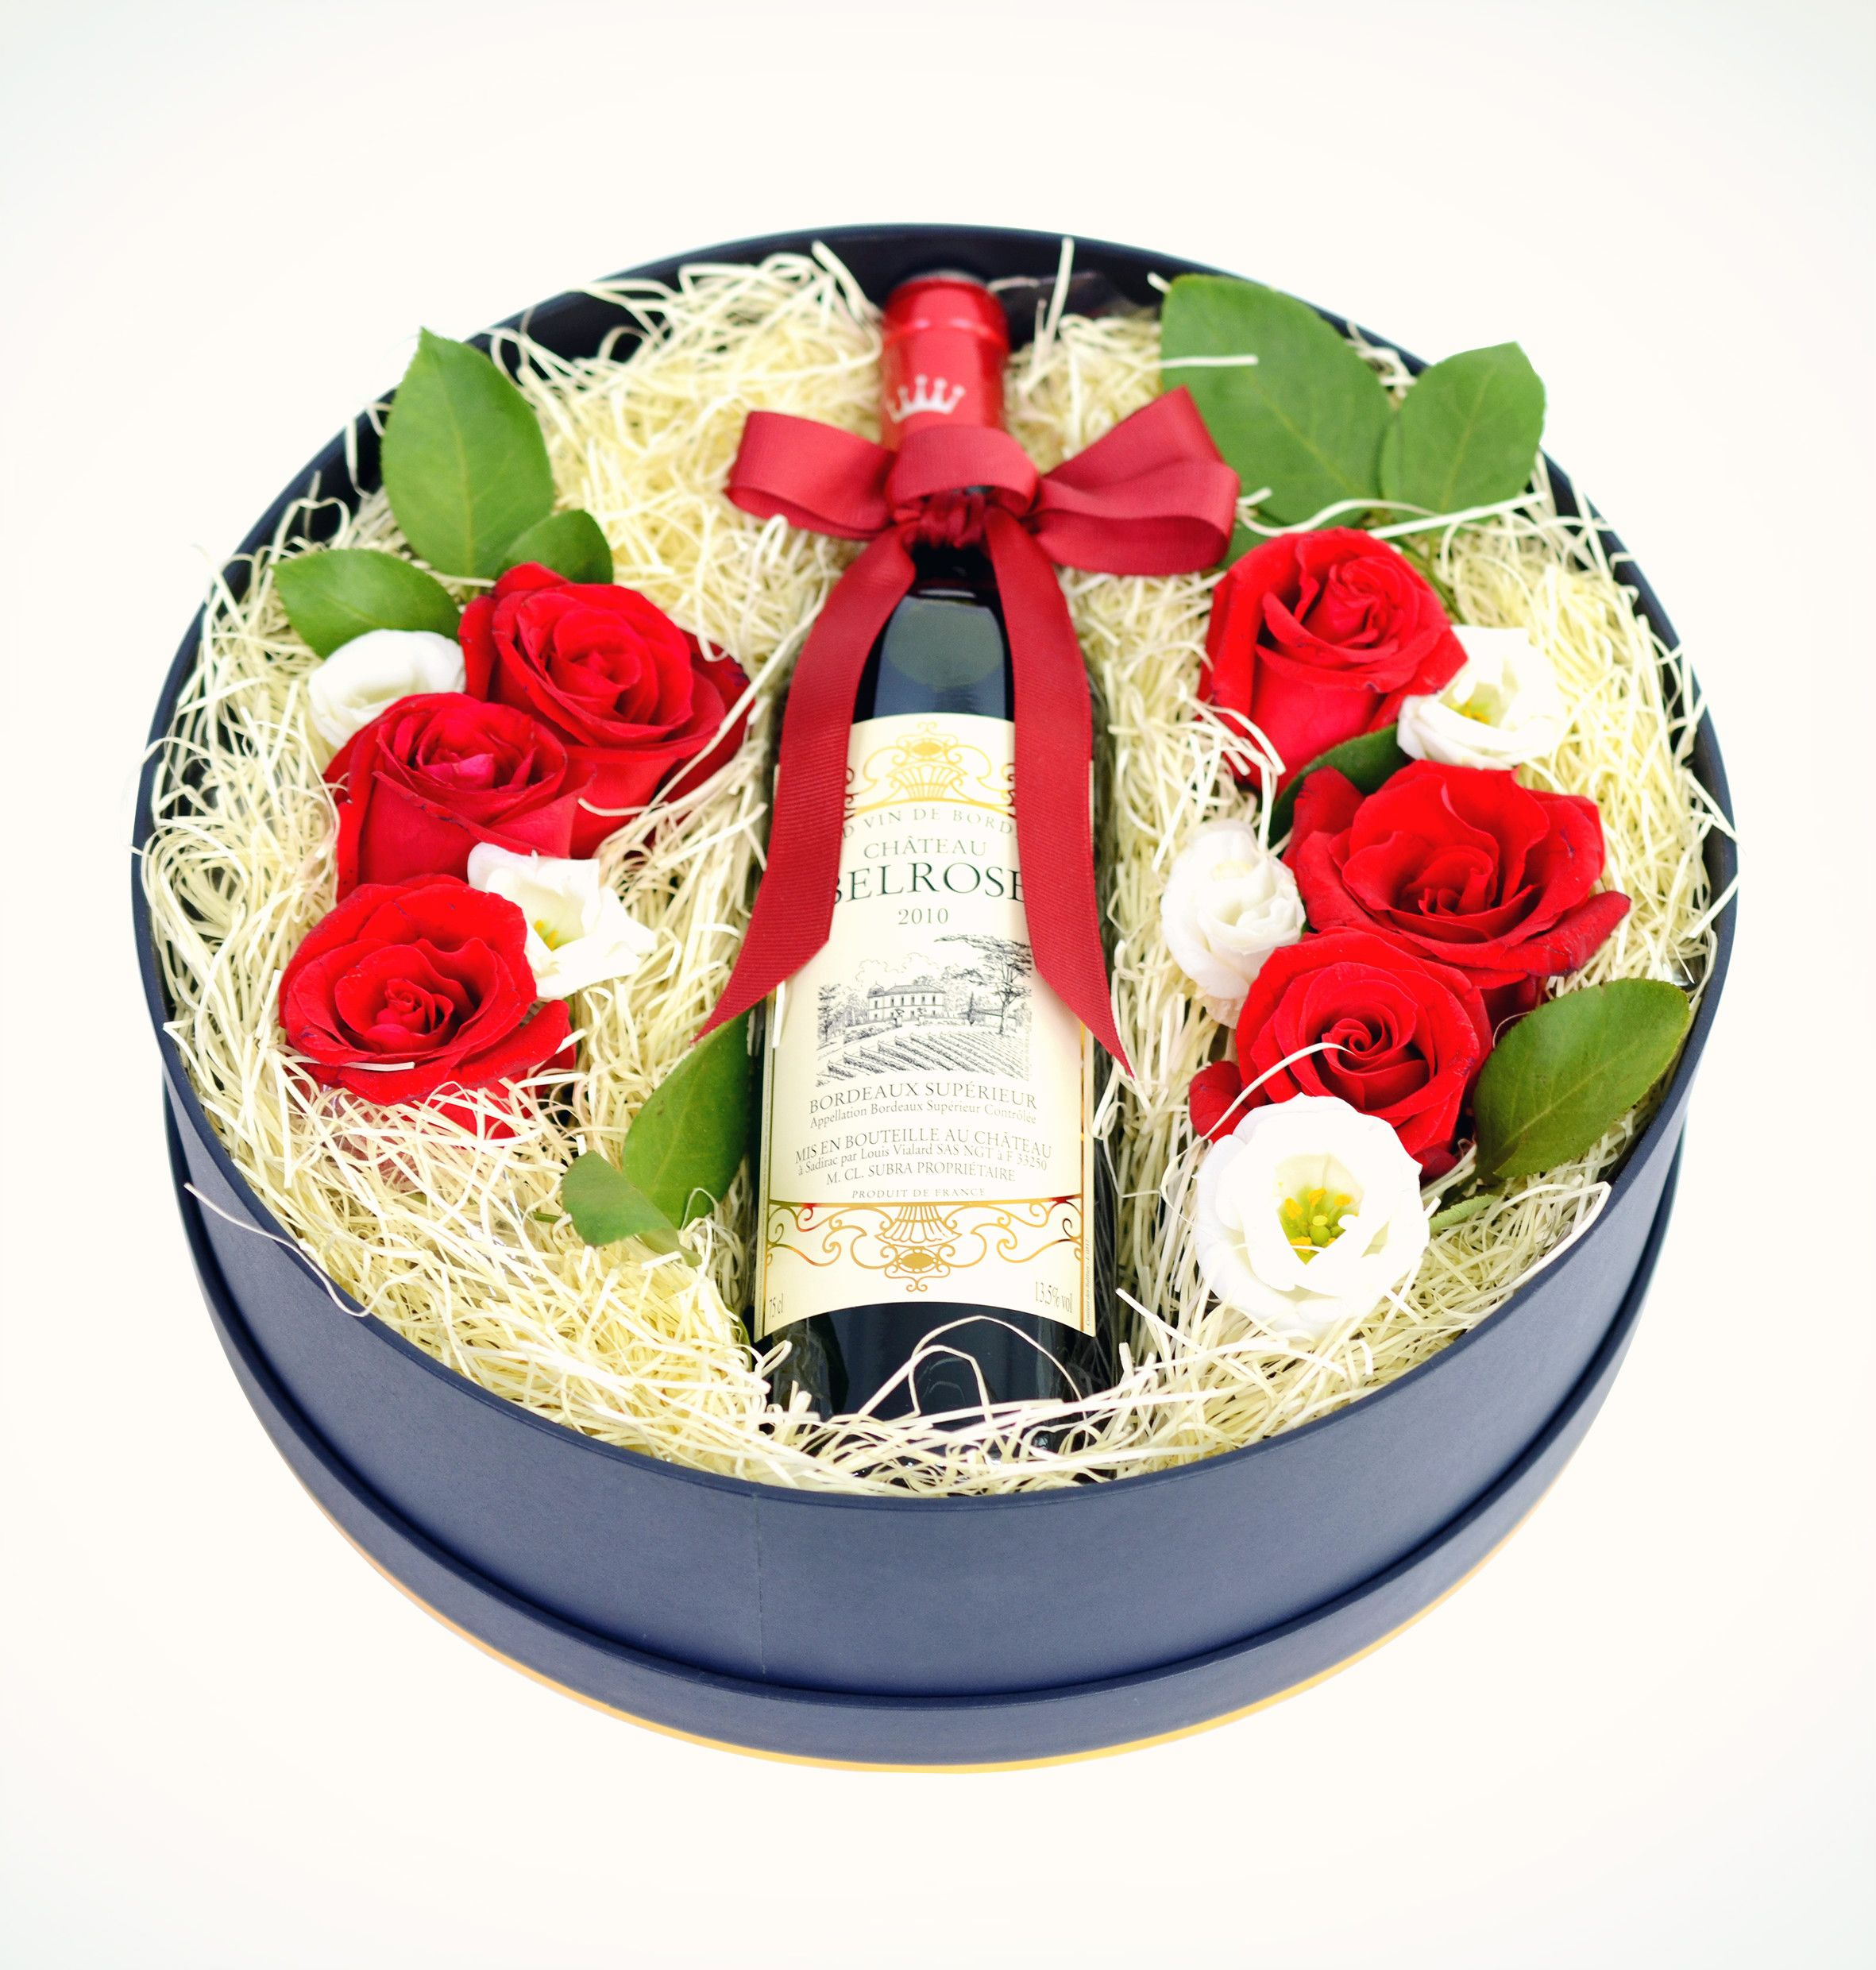 Surprise Your Dad With Our Wine With Flowers Gift Box On The Coming Father S Day Fruit Hampers Flower Gift Gift Box